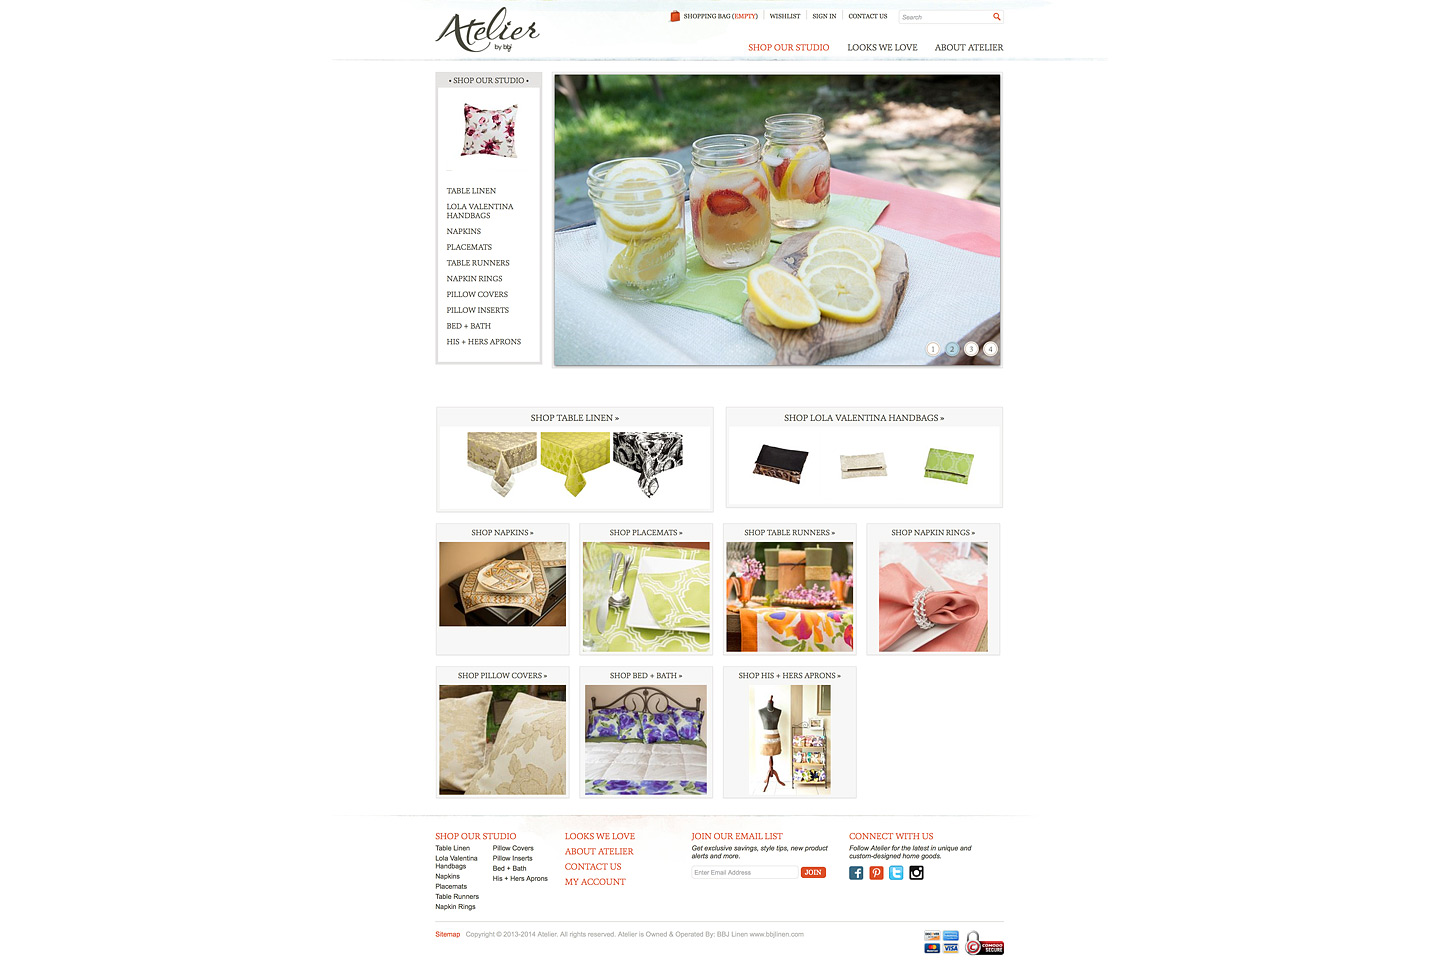 a full length screen capture of the atelier by bbj homepage featuring all sorts of colorful images of designer home products